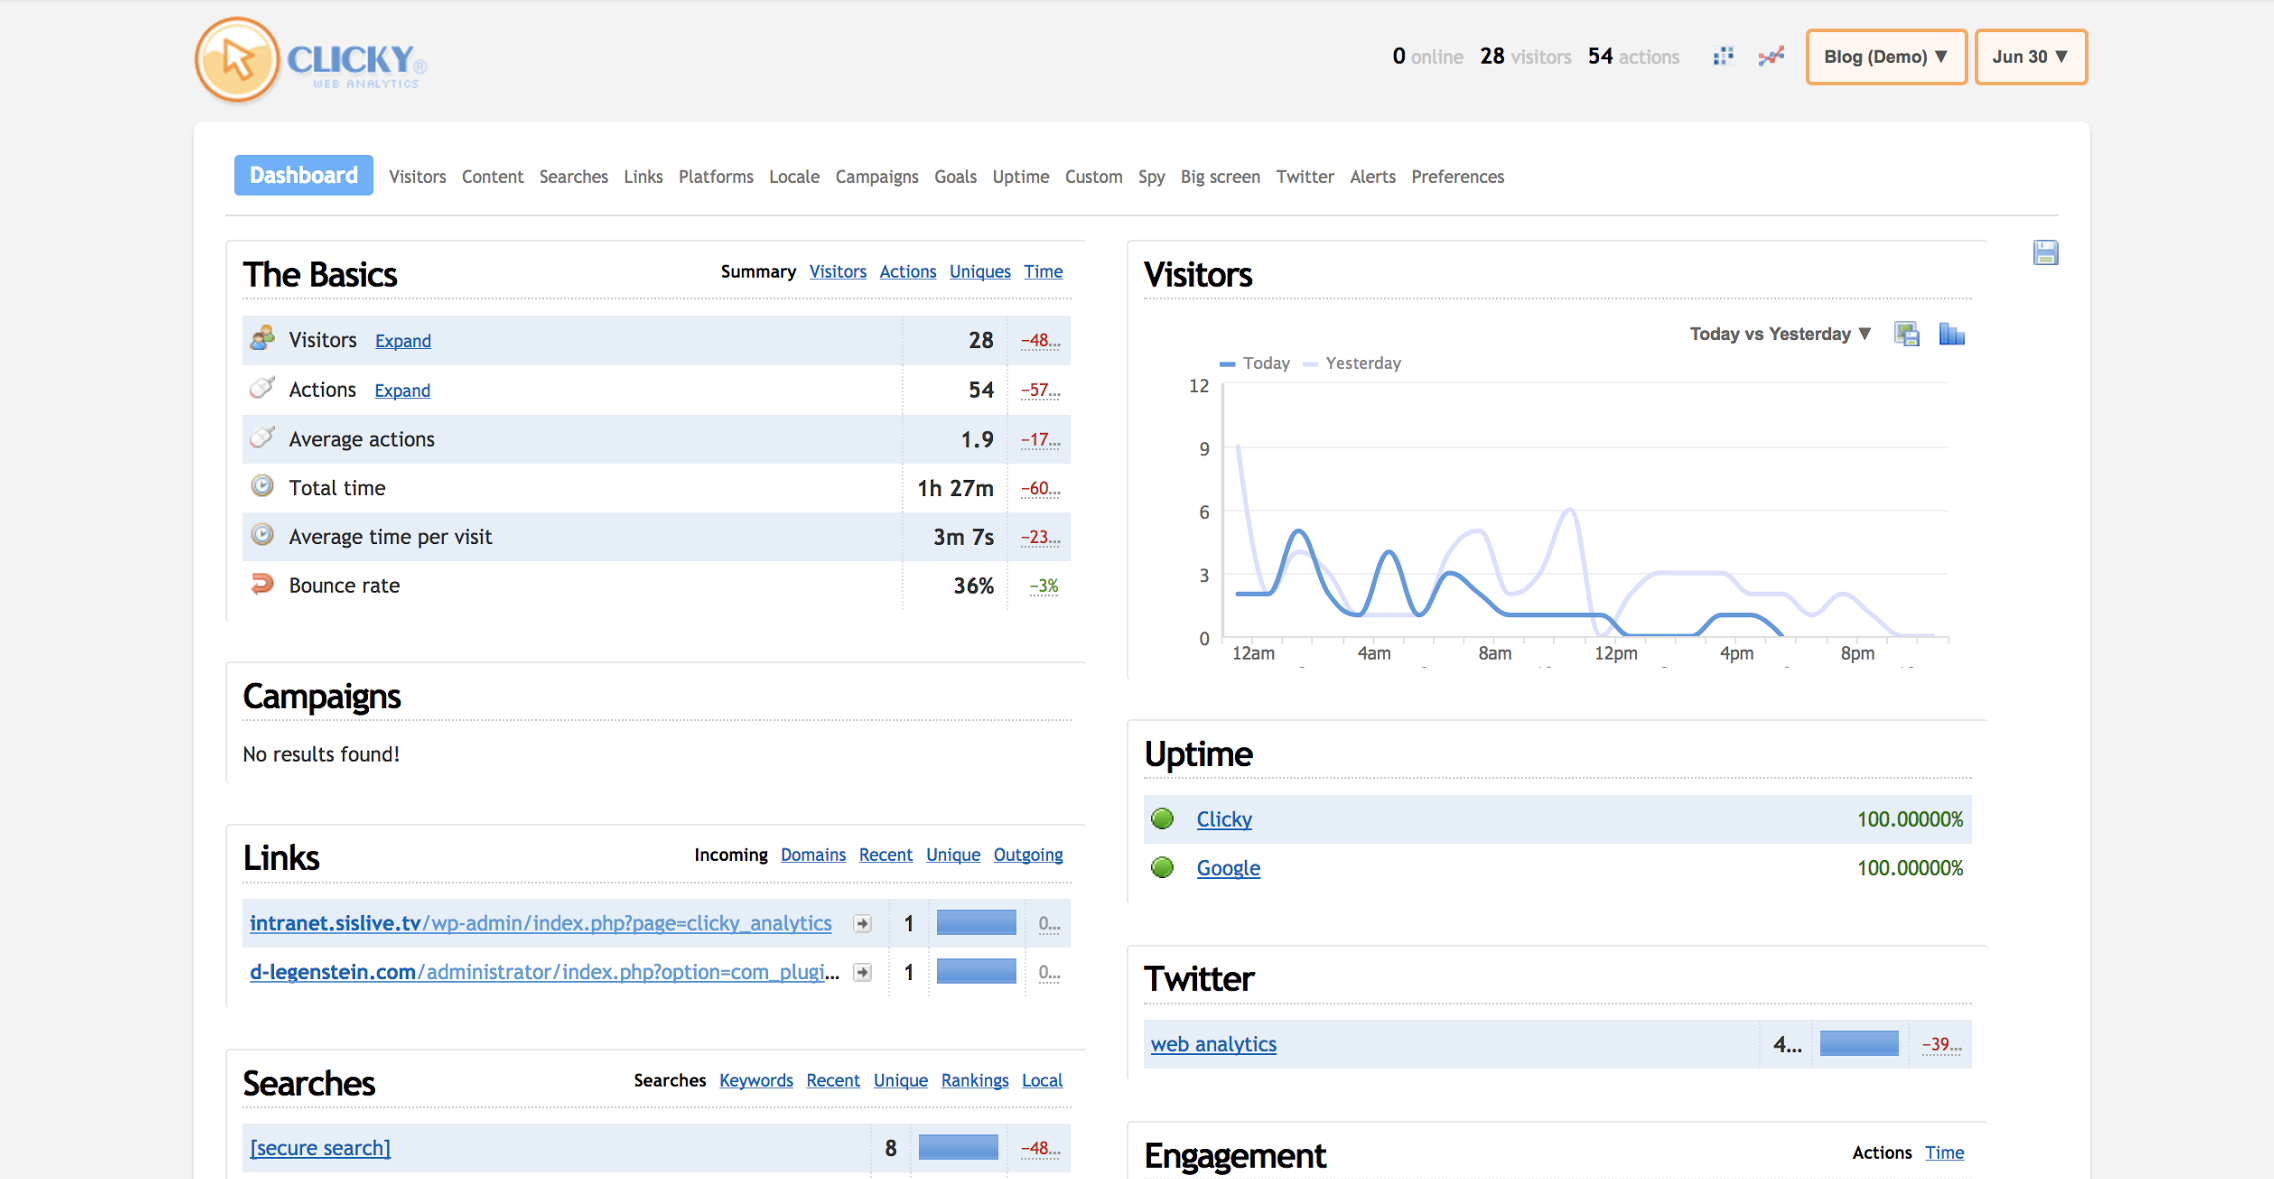 Tracks visitor engagement, website uptime, user searches, and average actions so teams can analyze user engagement